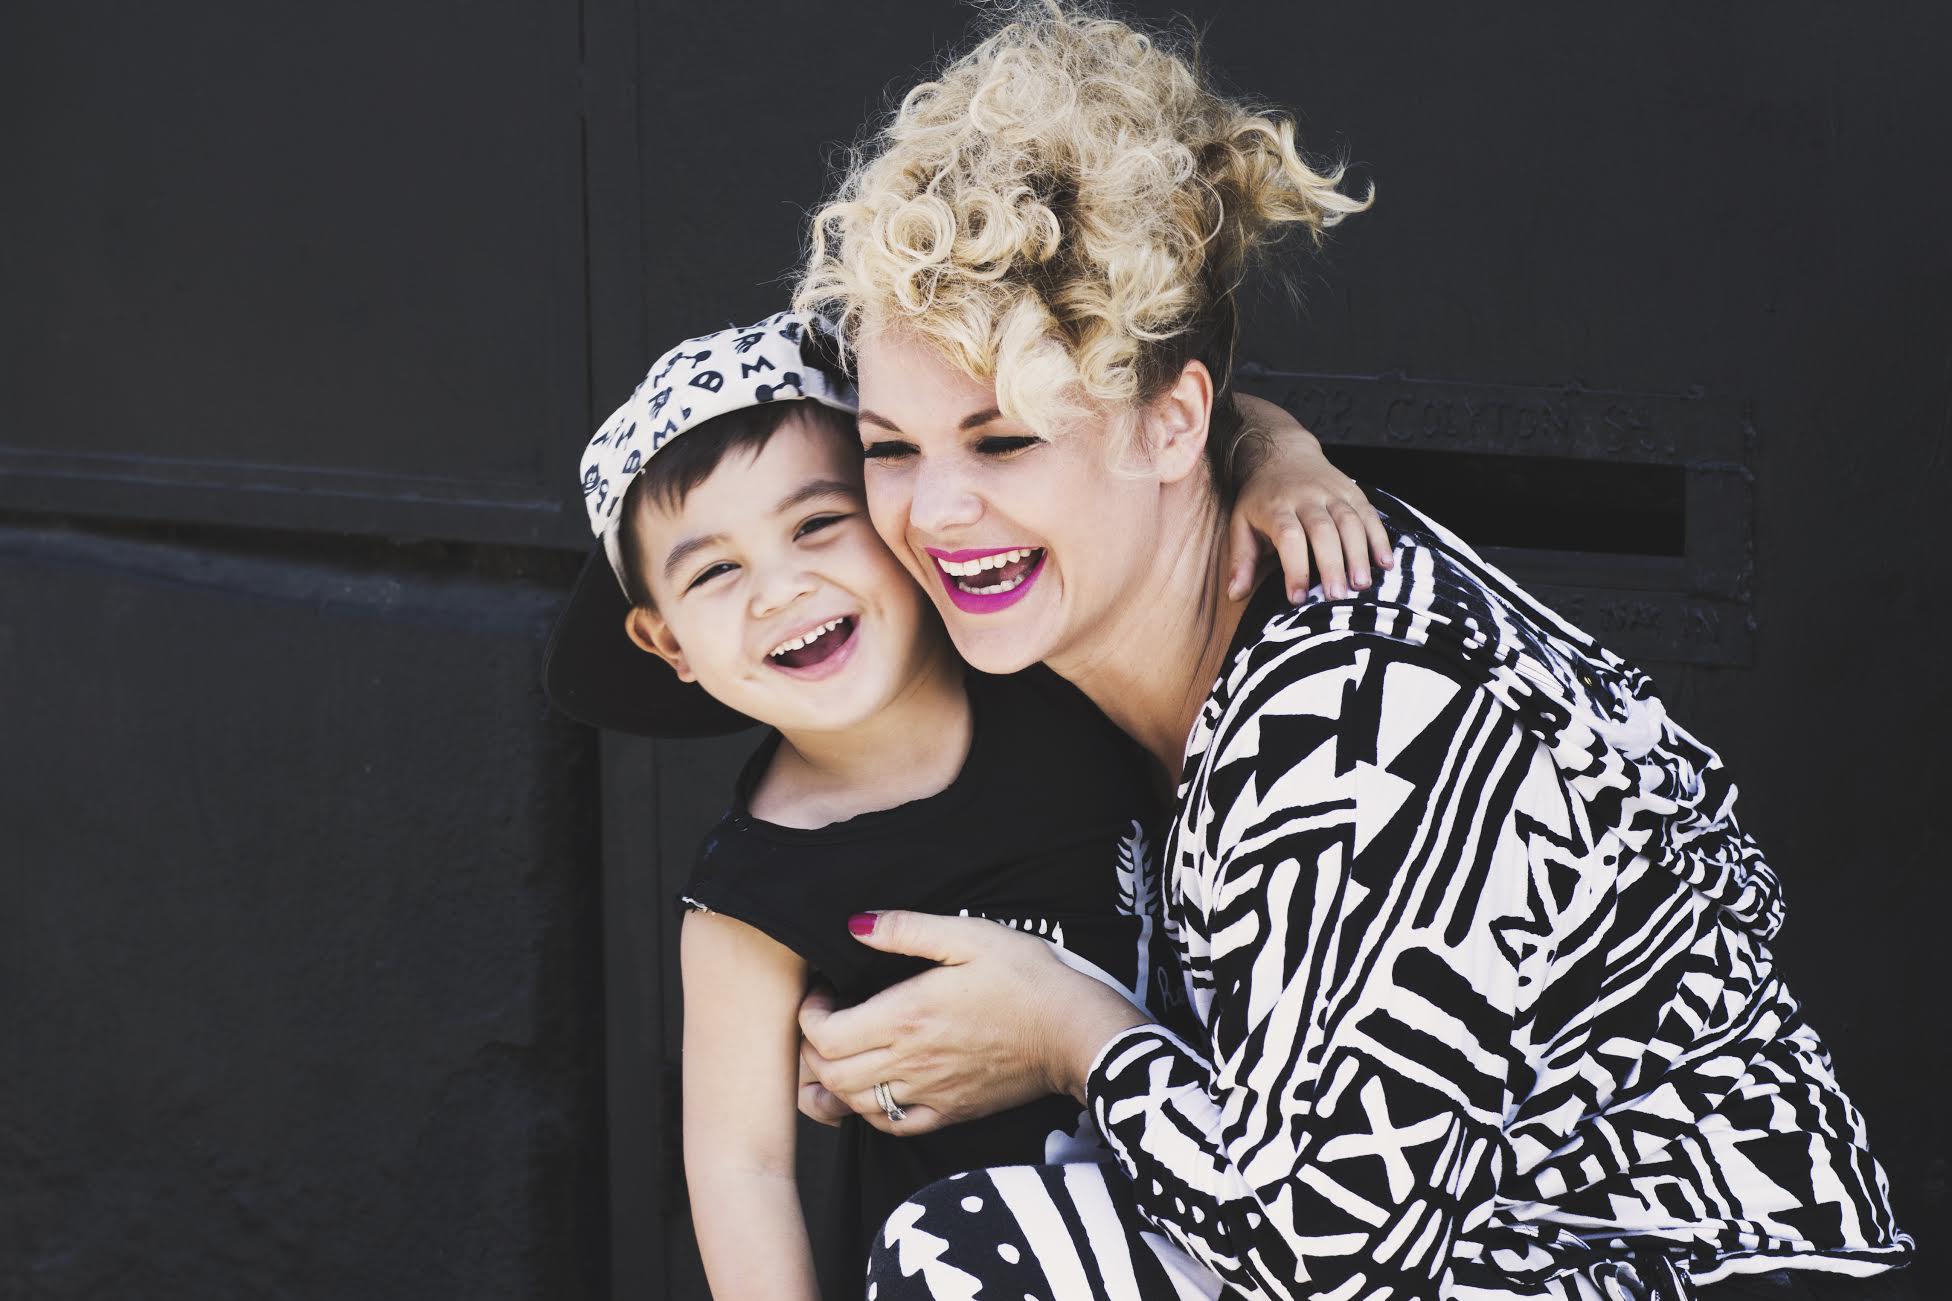 Stefanie Klausmann with her son, Marlo (Pictured here at 3yrs. old) - Photography by SMAC